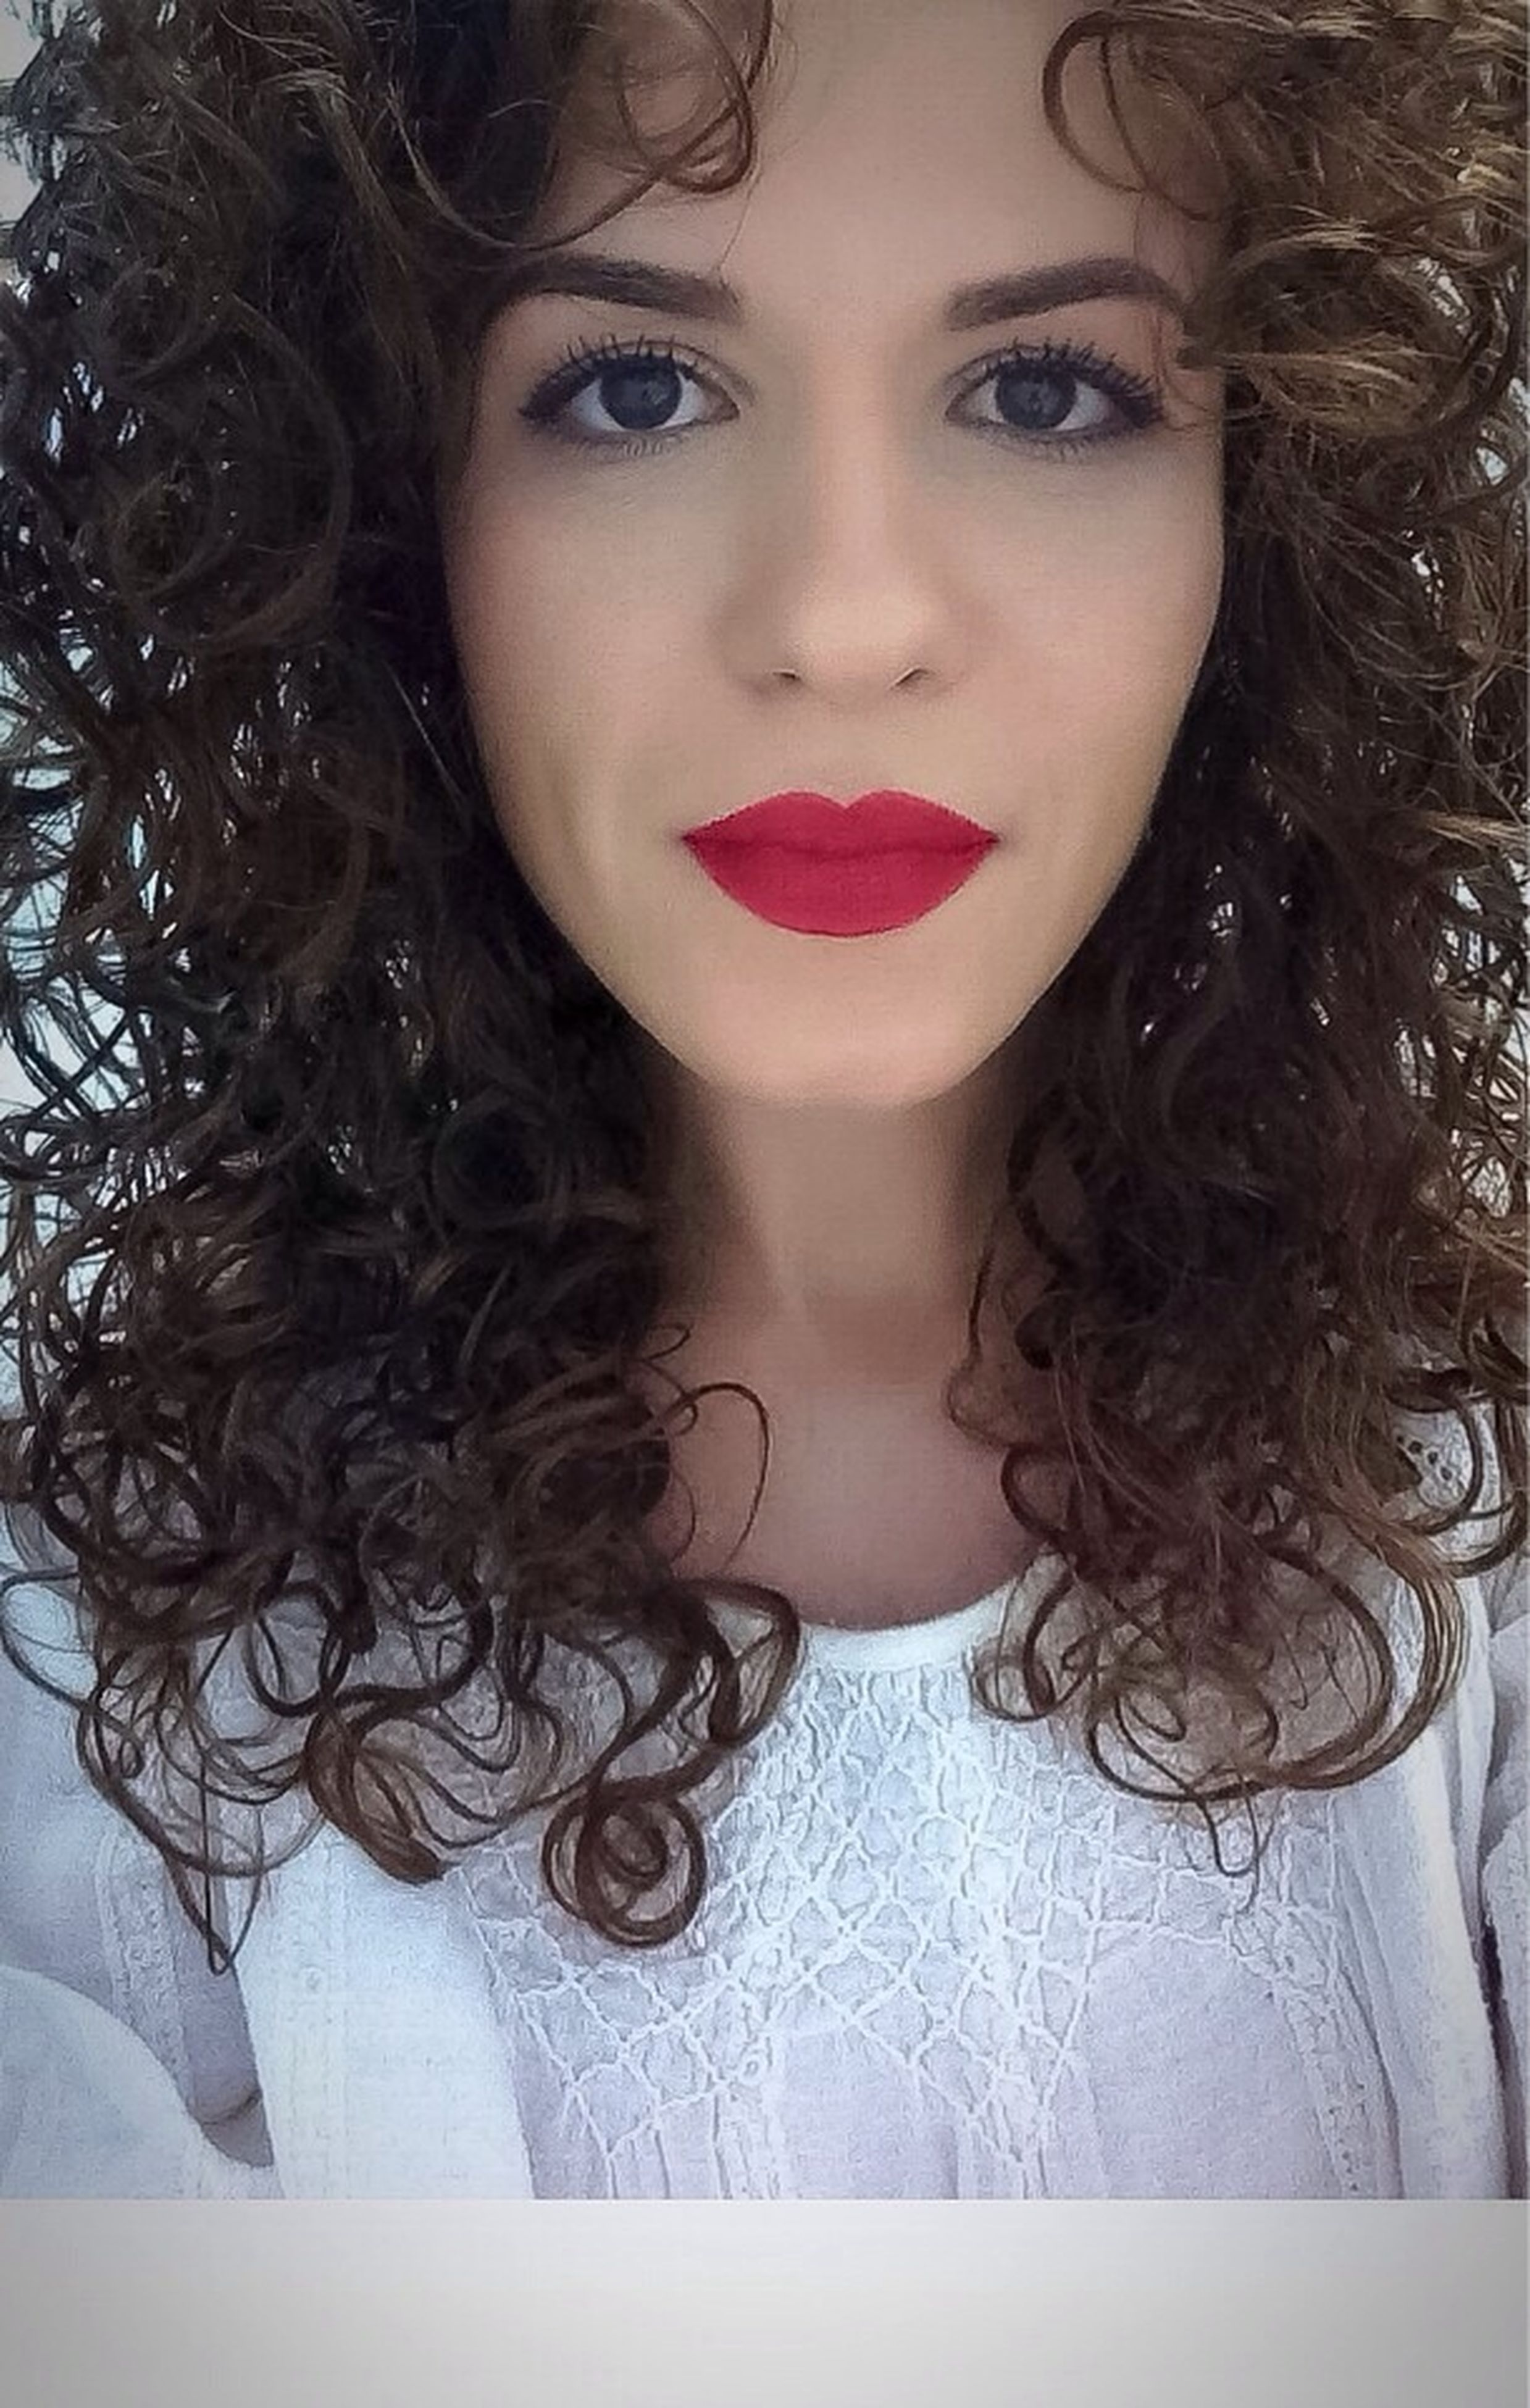 young women, young adult, beauty, red, red lipstick, person, long hair, nature, eye make-up, fashionable, eyeshadow